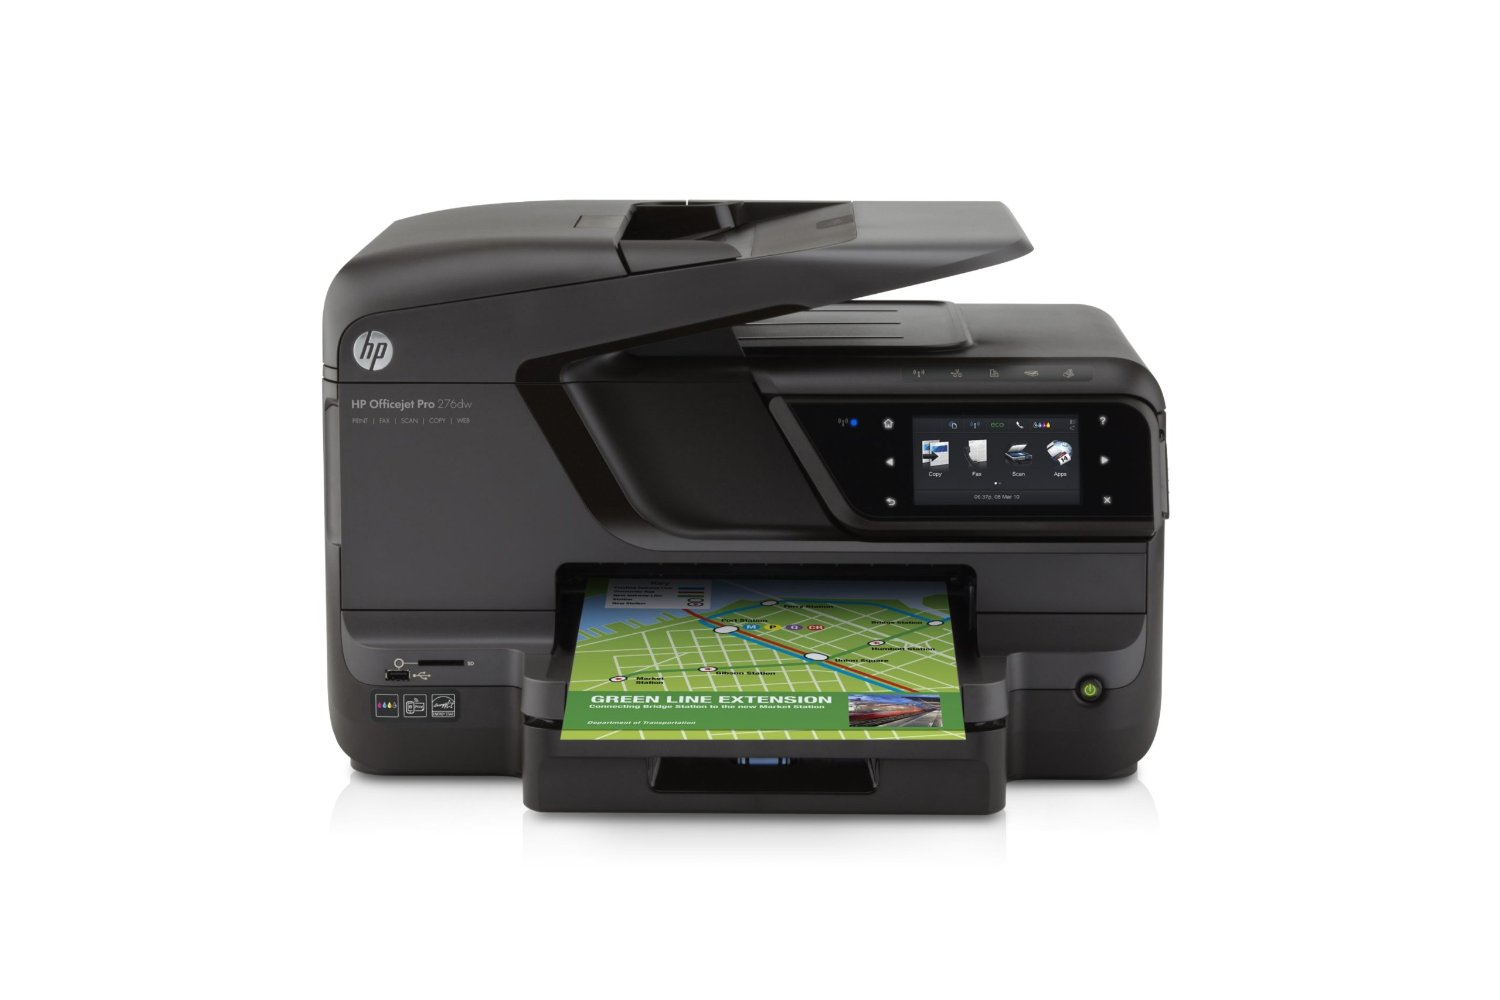 HP OfficeJet Pro 276dw Wireless All-in-One Printer Image